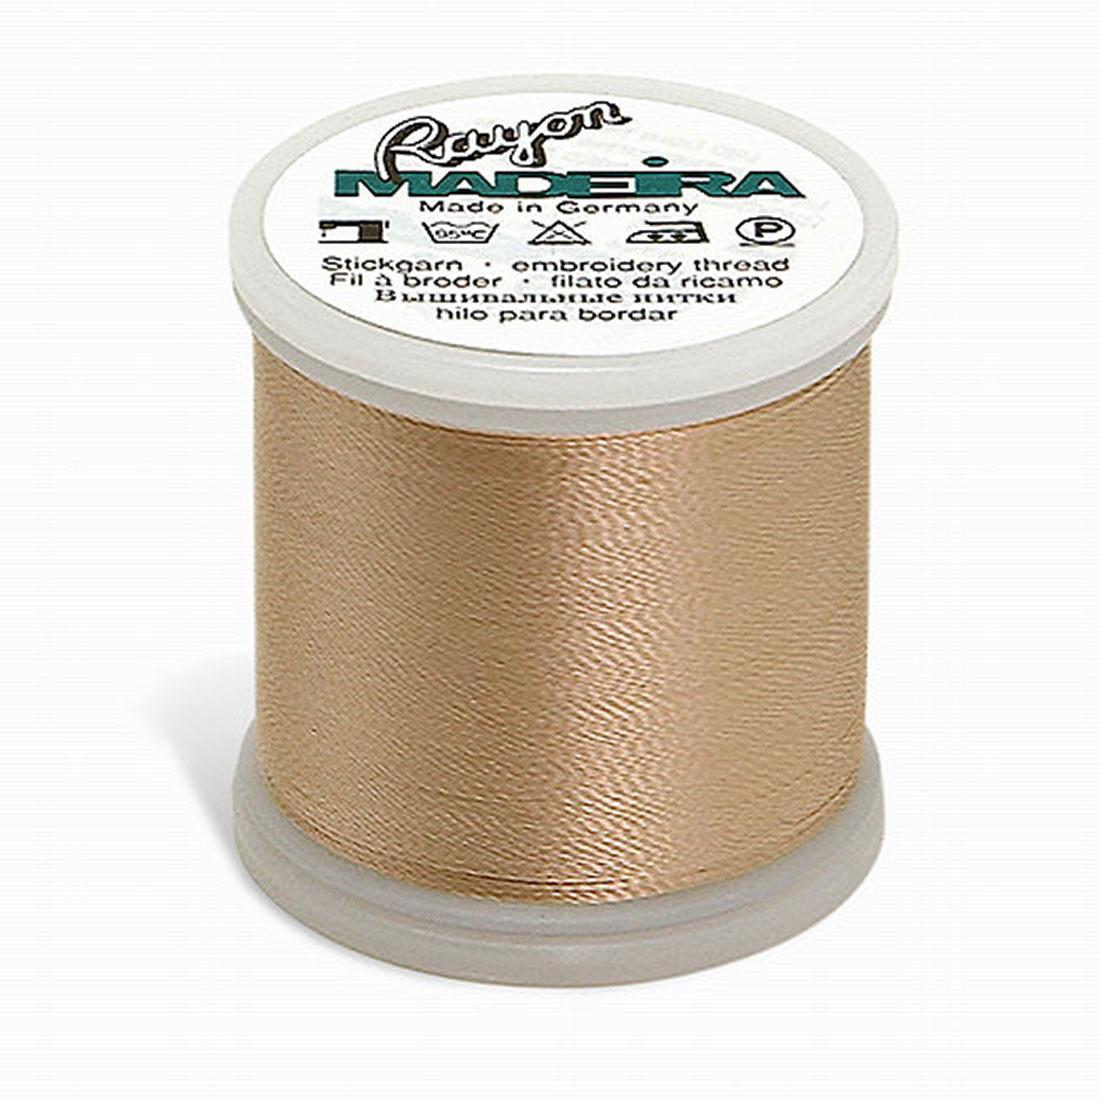 Madeira Rayon - Machine Embroidery Thread - 220YD Spool - Pastel Peach